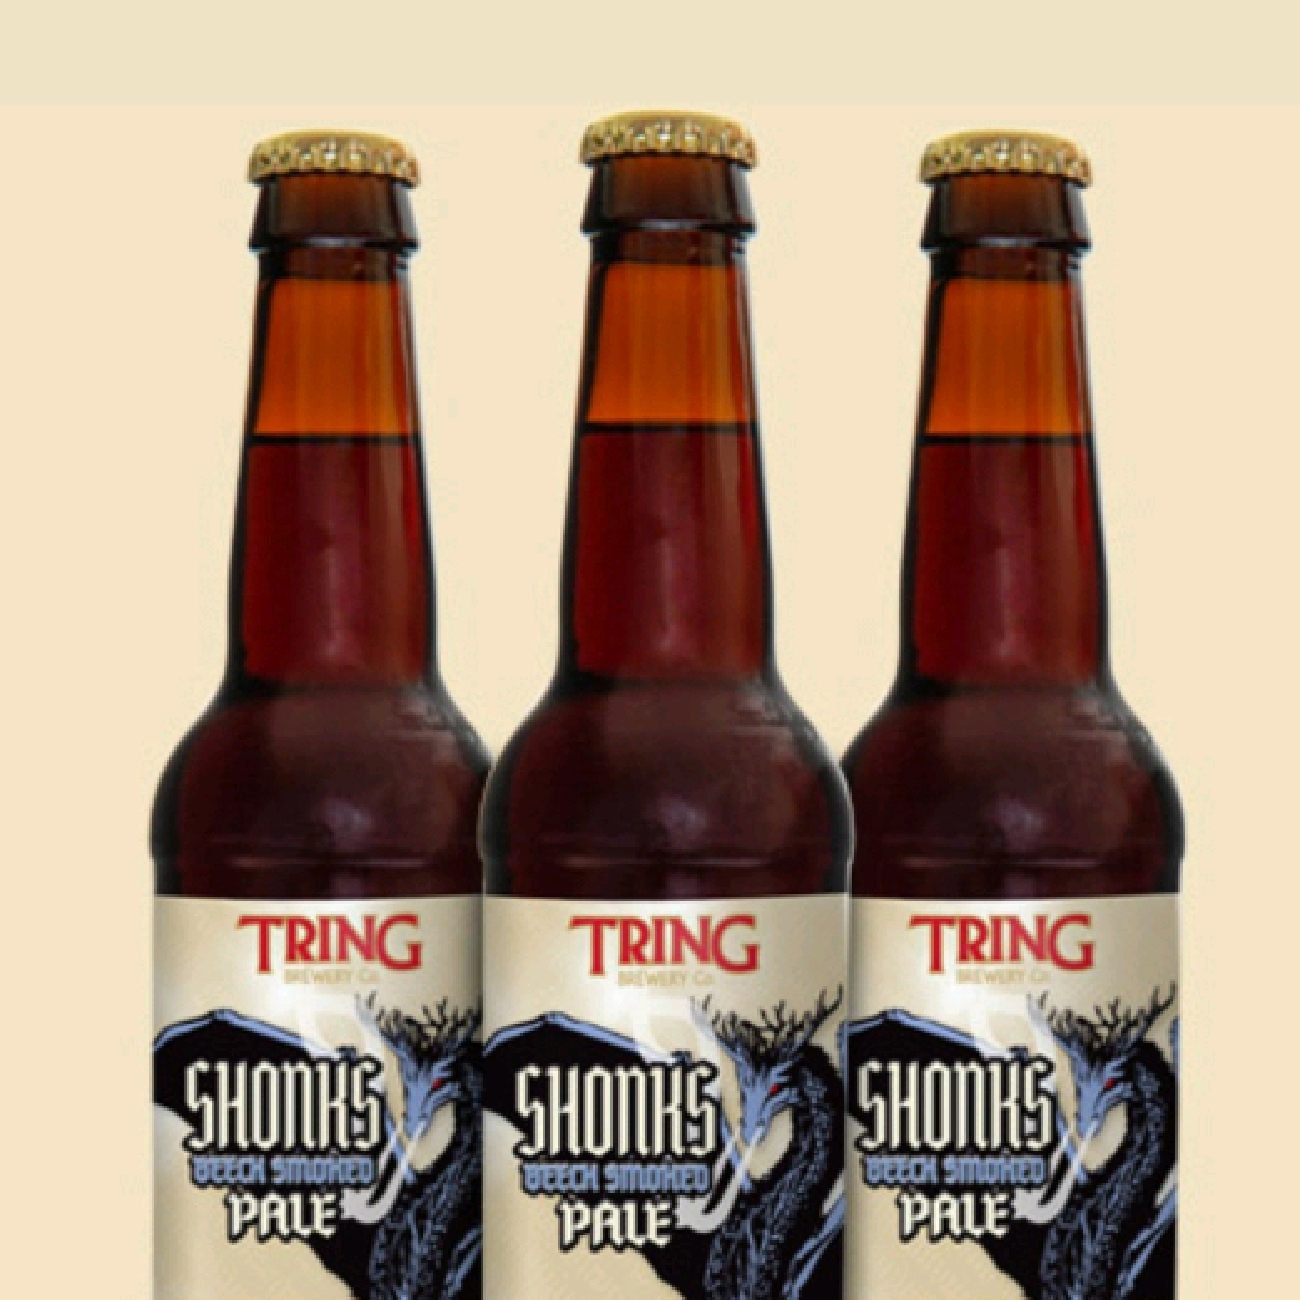 Shonks (Tring Brewery)